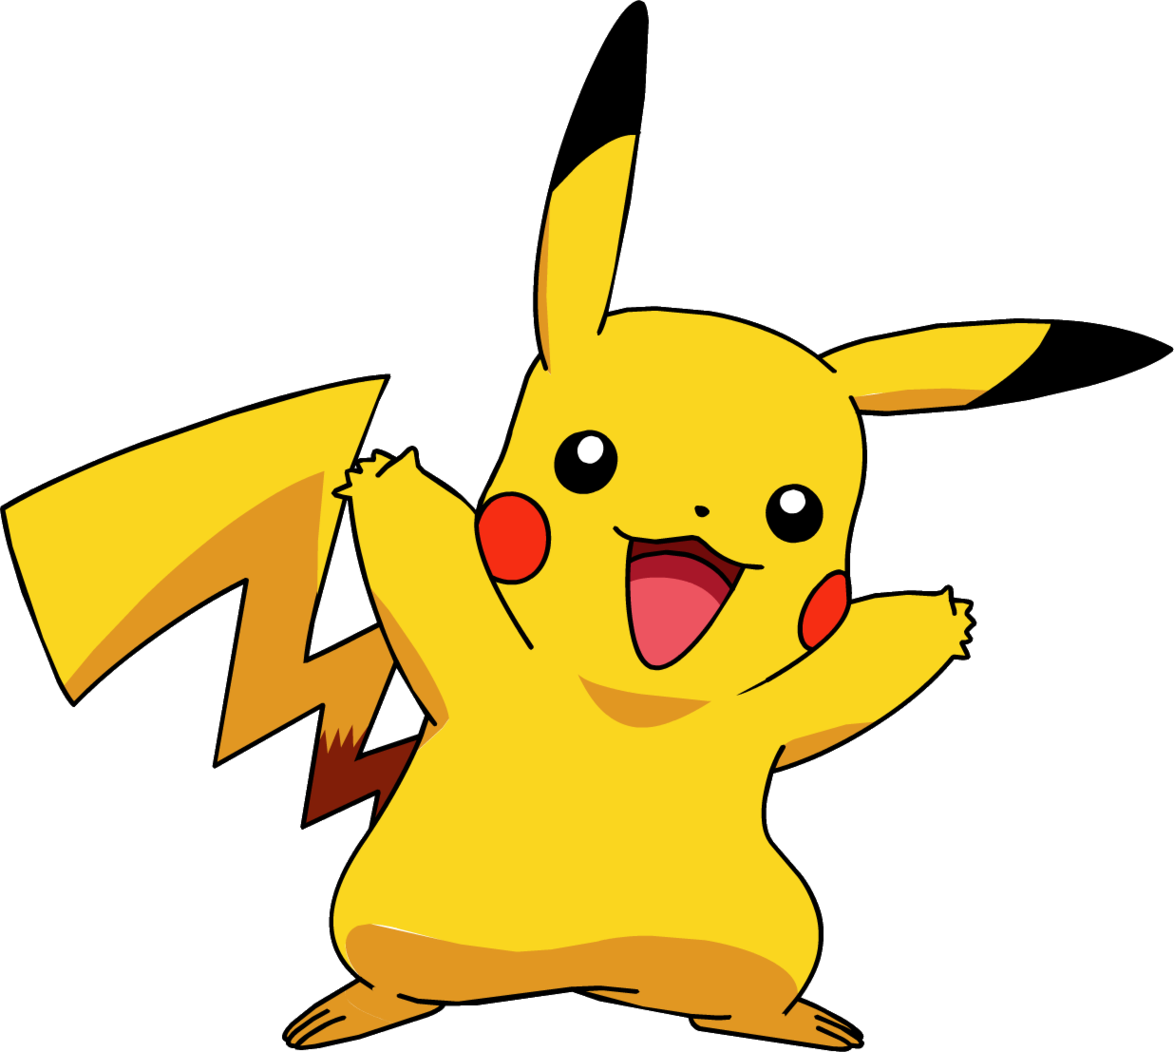 Clip Art Pikachu Clipart pikachu clipart best free to use clip art resource